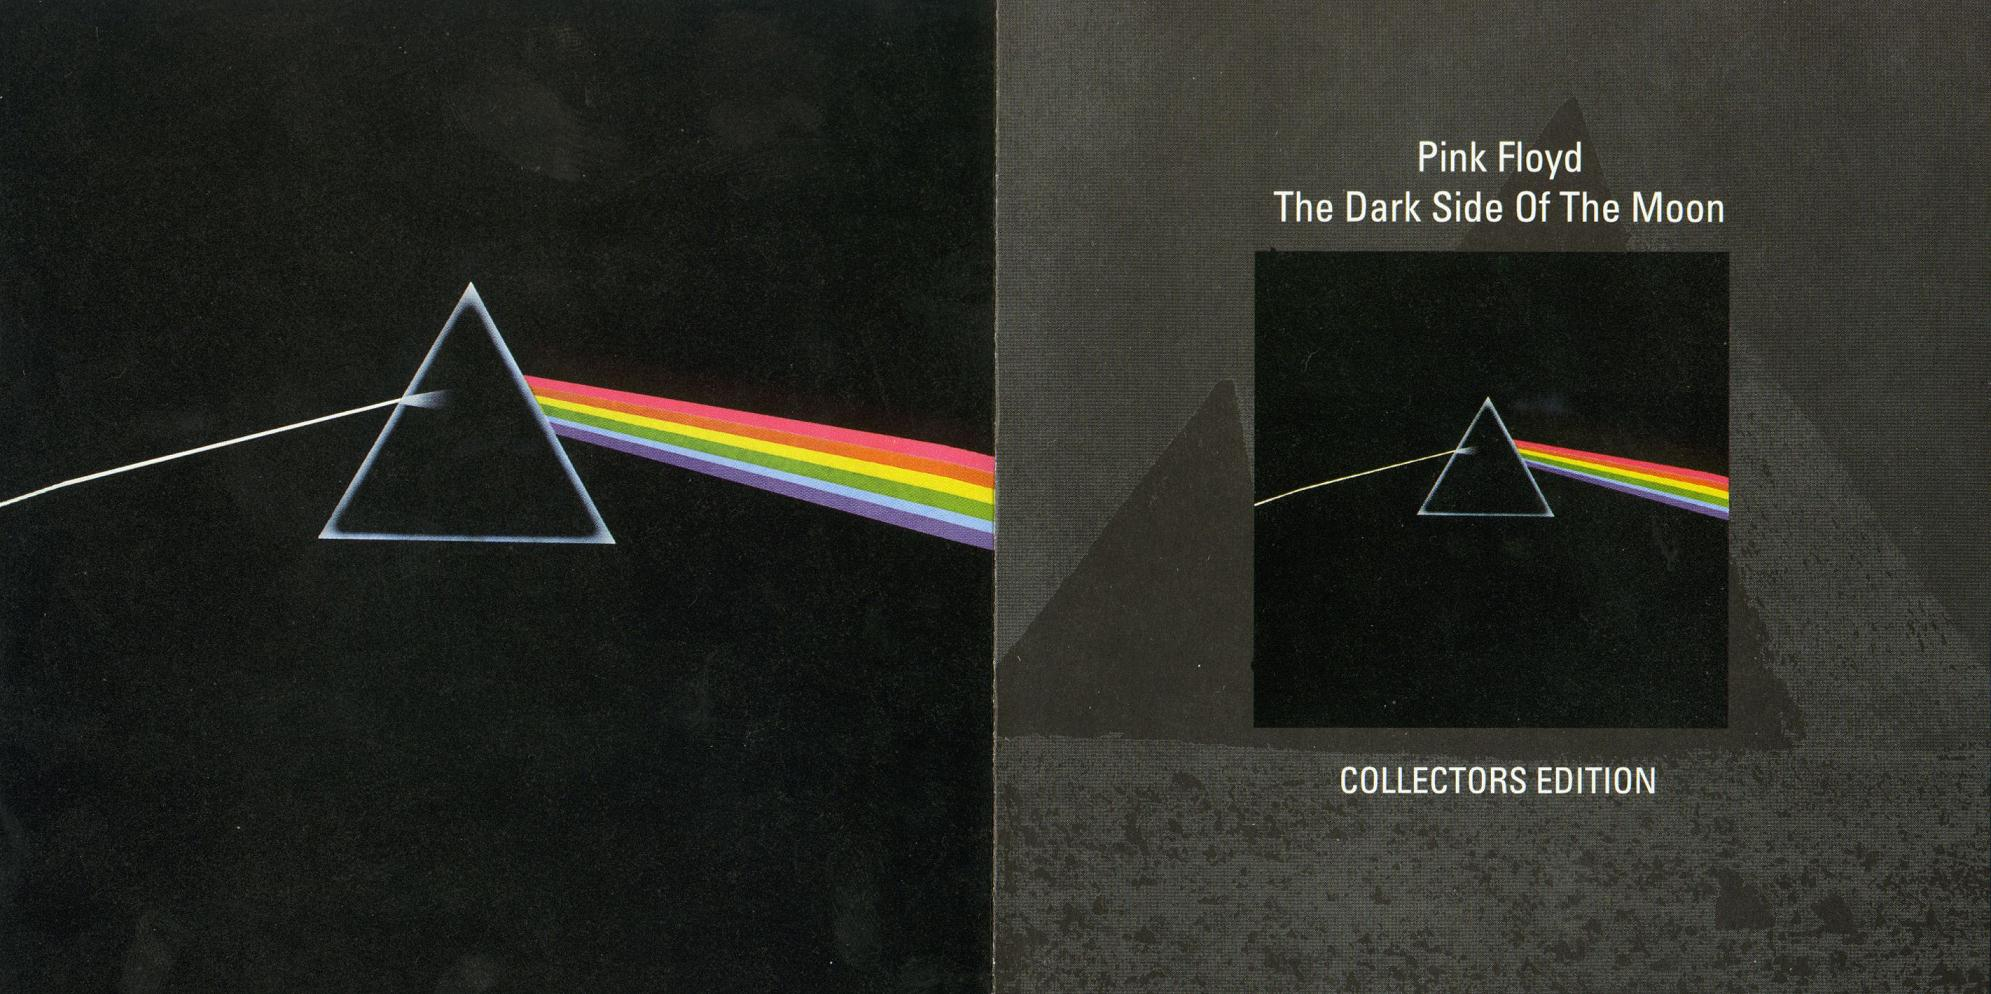 1973-the_dark_side_of_the_moon_colector_sq-front